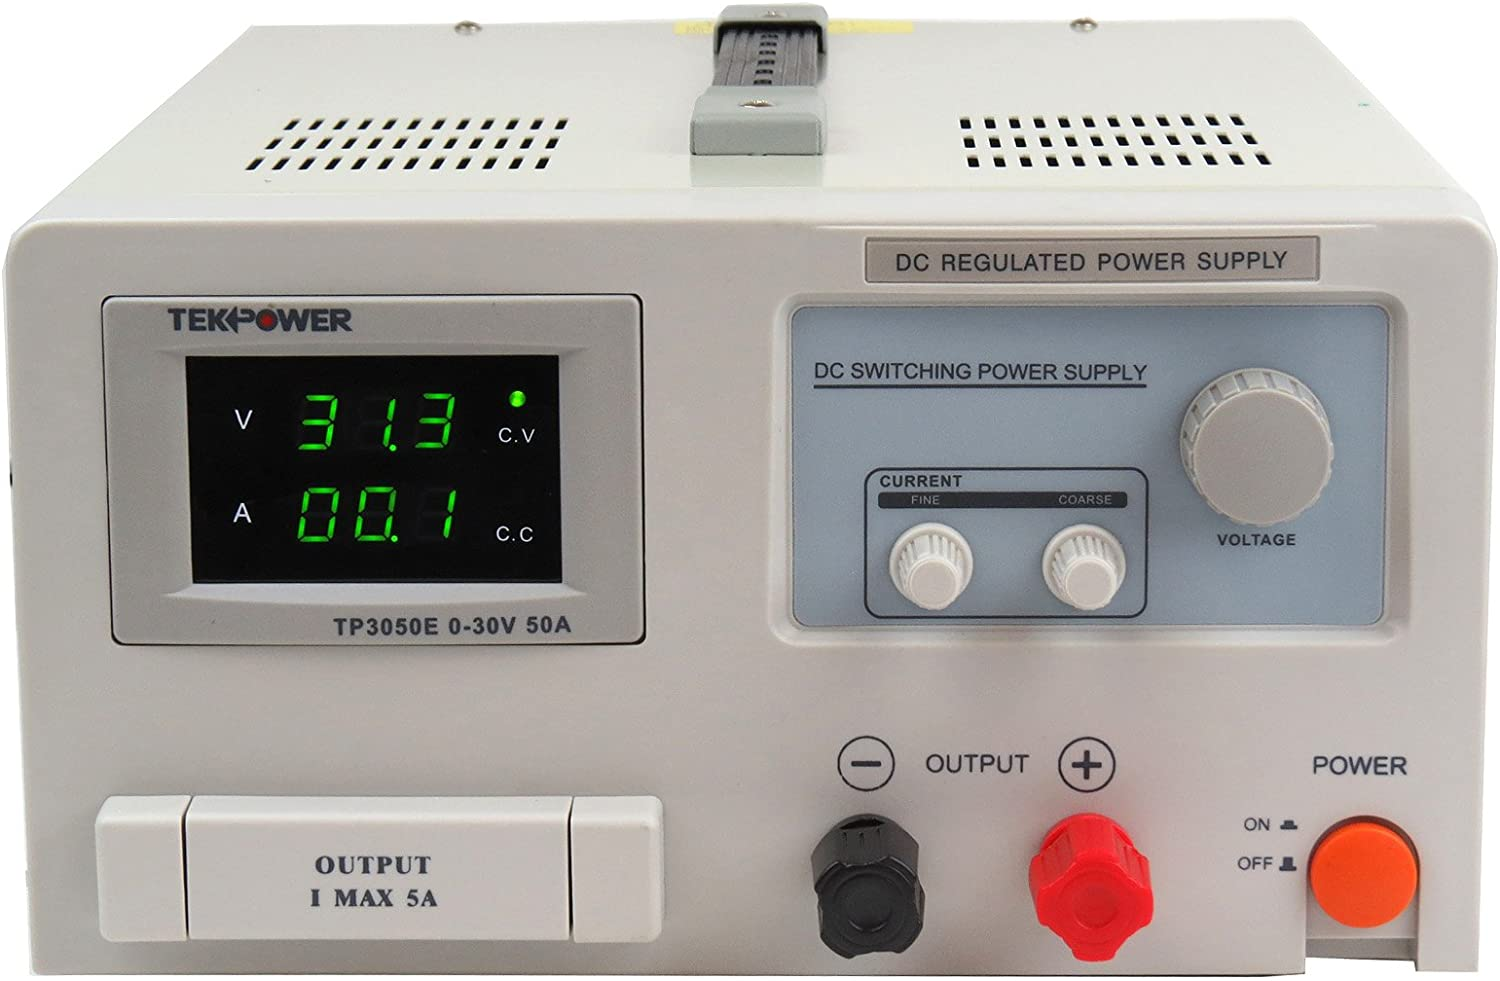 TekPower TP3050E DC Adjustable Switching Power Supply 30V 50A Digital Display